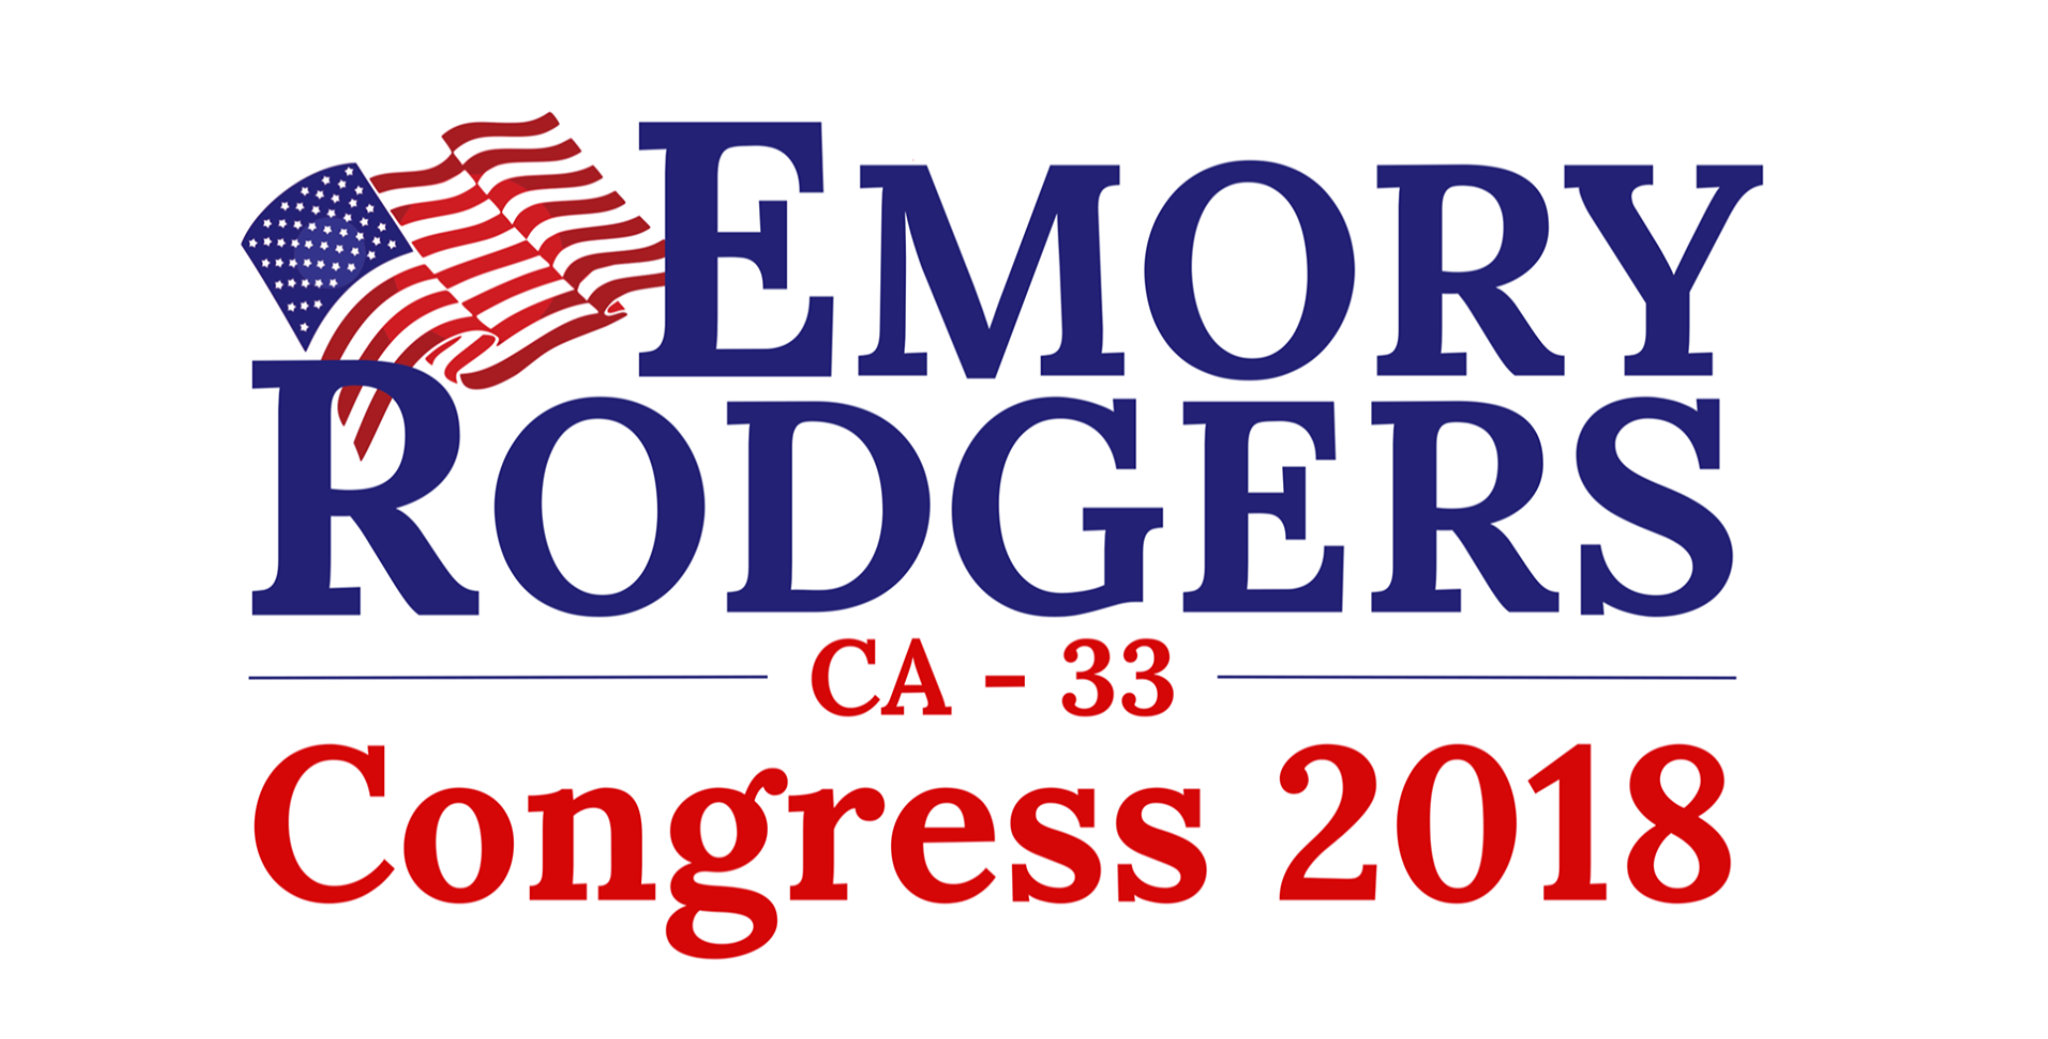 Emory_rodgers_logo_1500